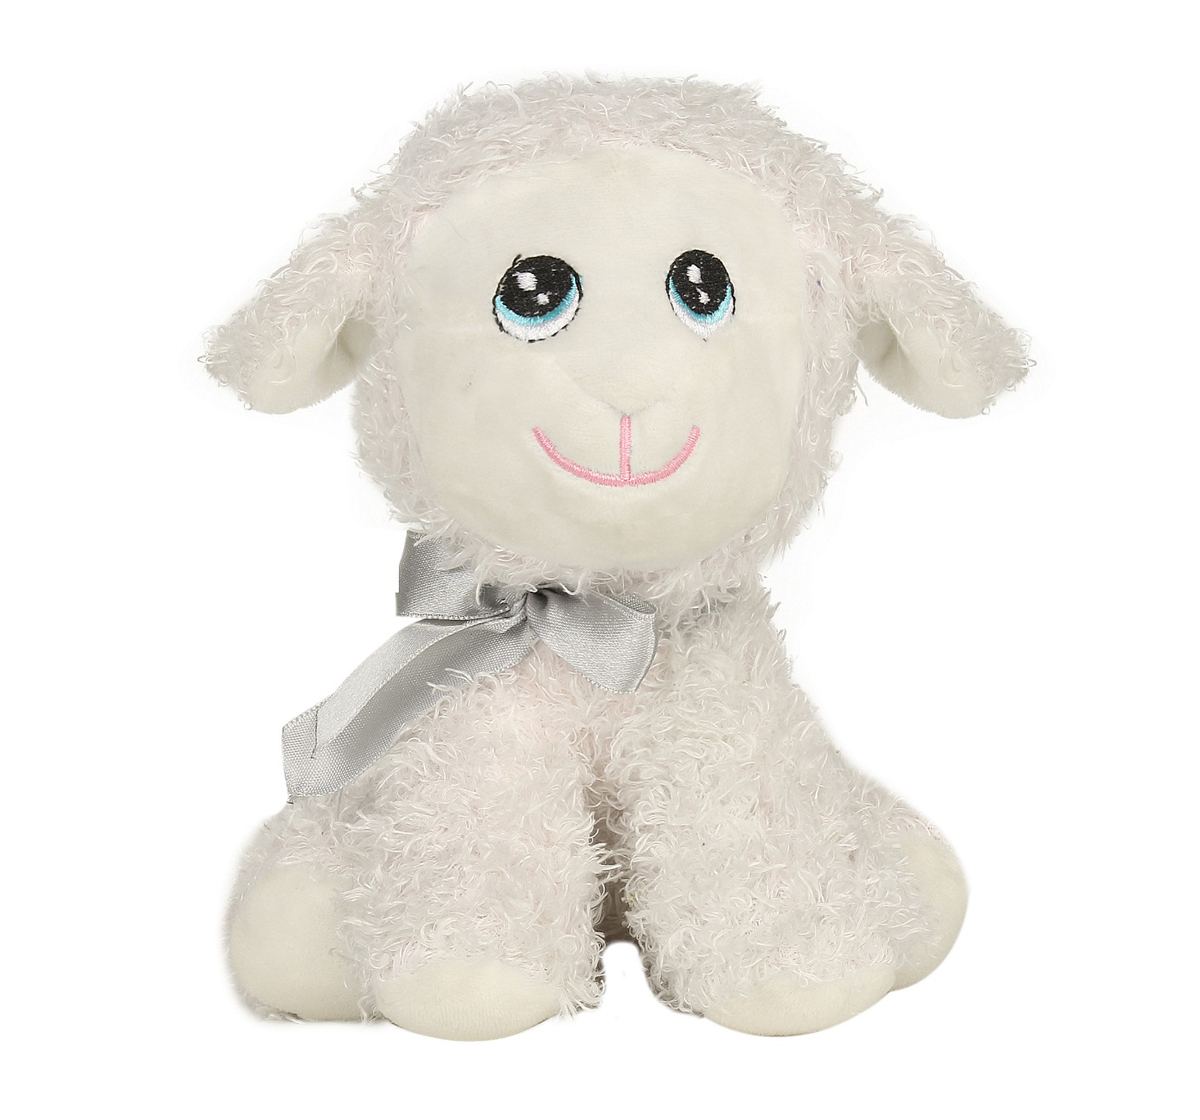 Sophie   Sophie Cuddles Sheep Soft Toy, 18Cms Quirky Soft Toys for Kids age 12M+ - 18 Cm (White)